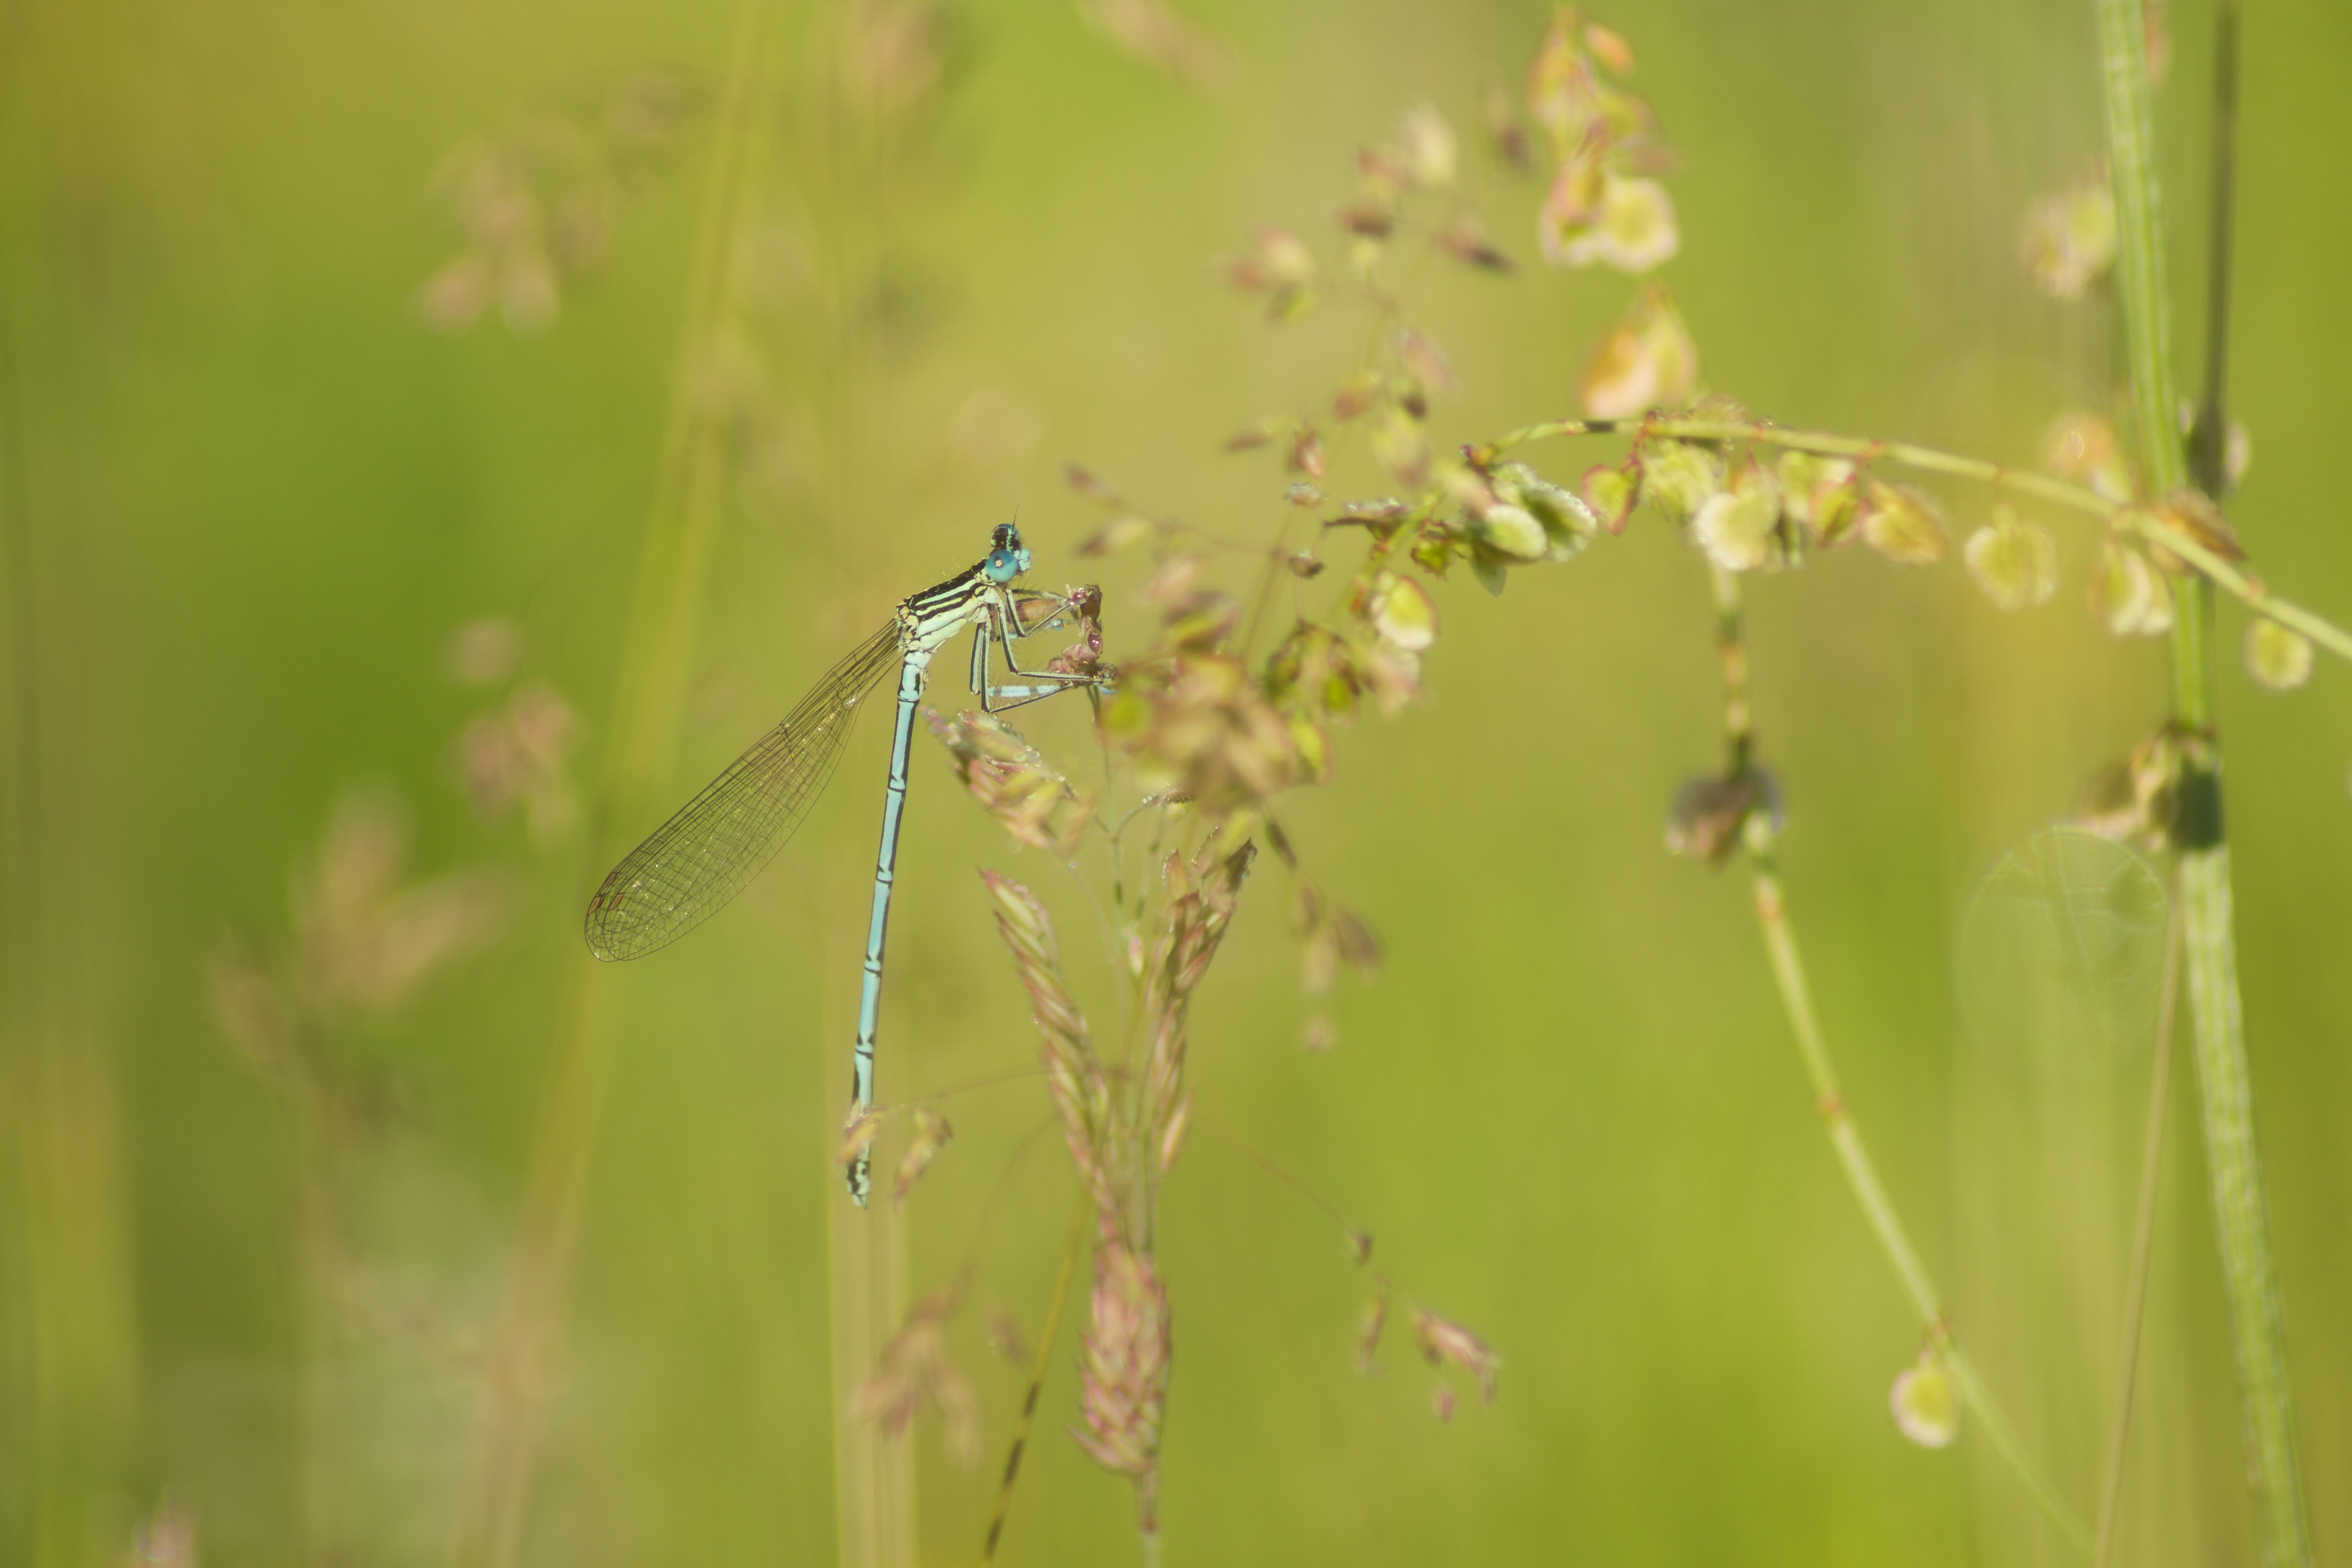 green dragonfly perched on green leafed plant in close-up photography